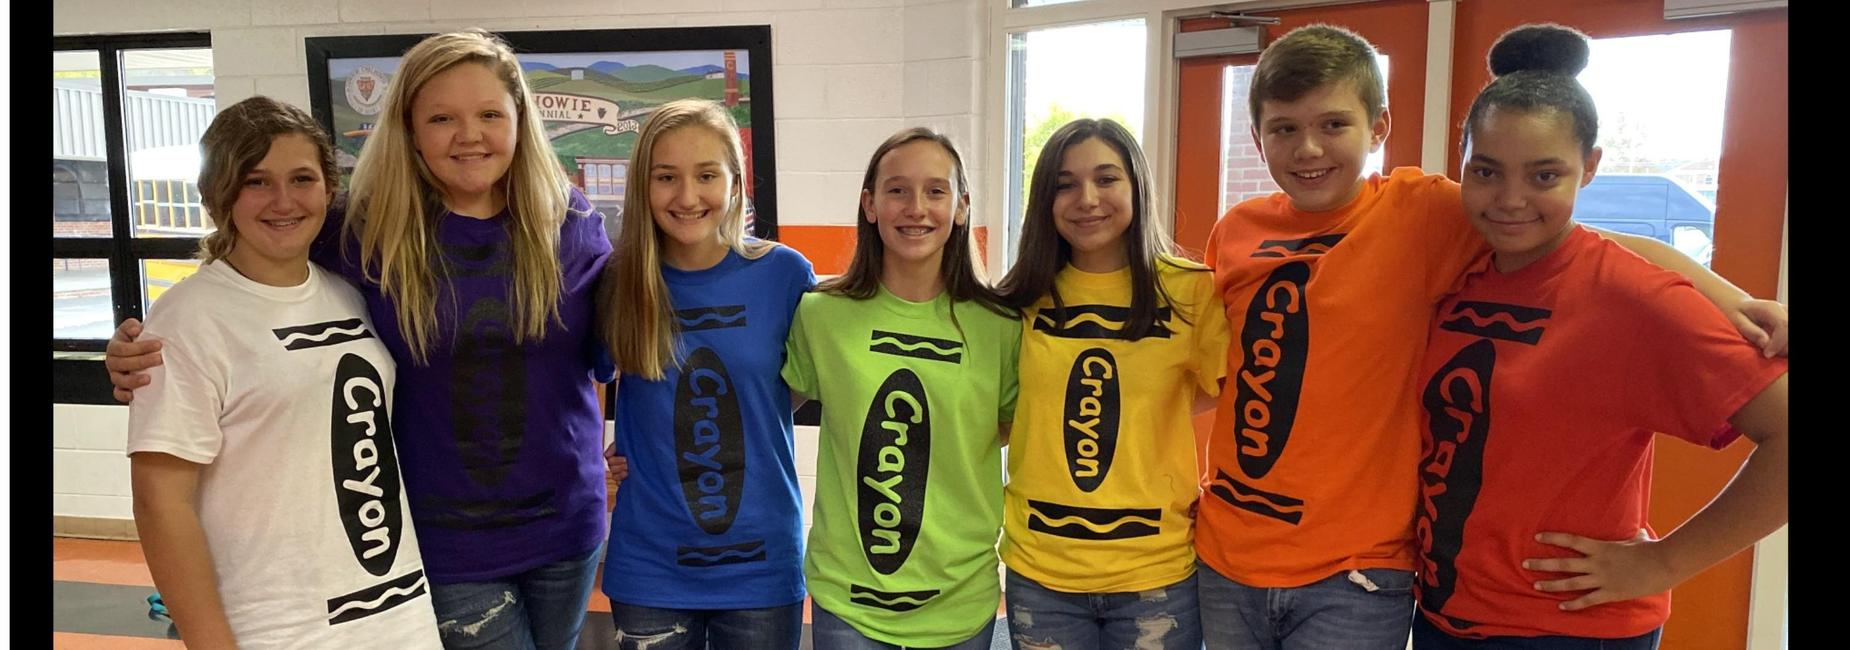 Group dressed as crayons